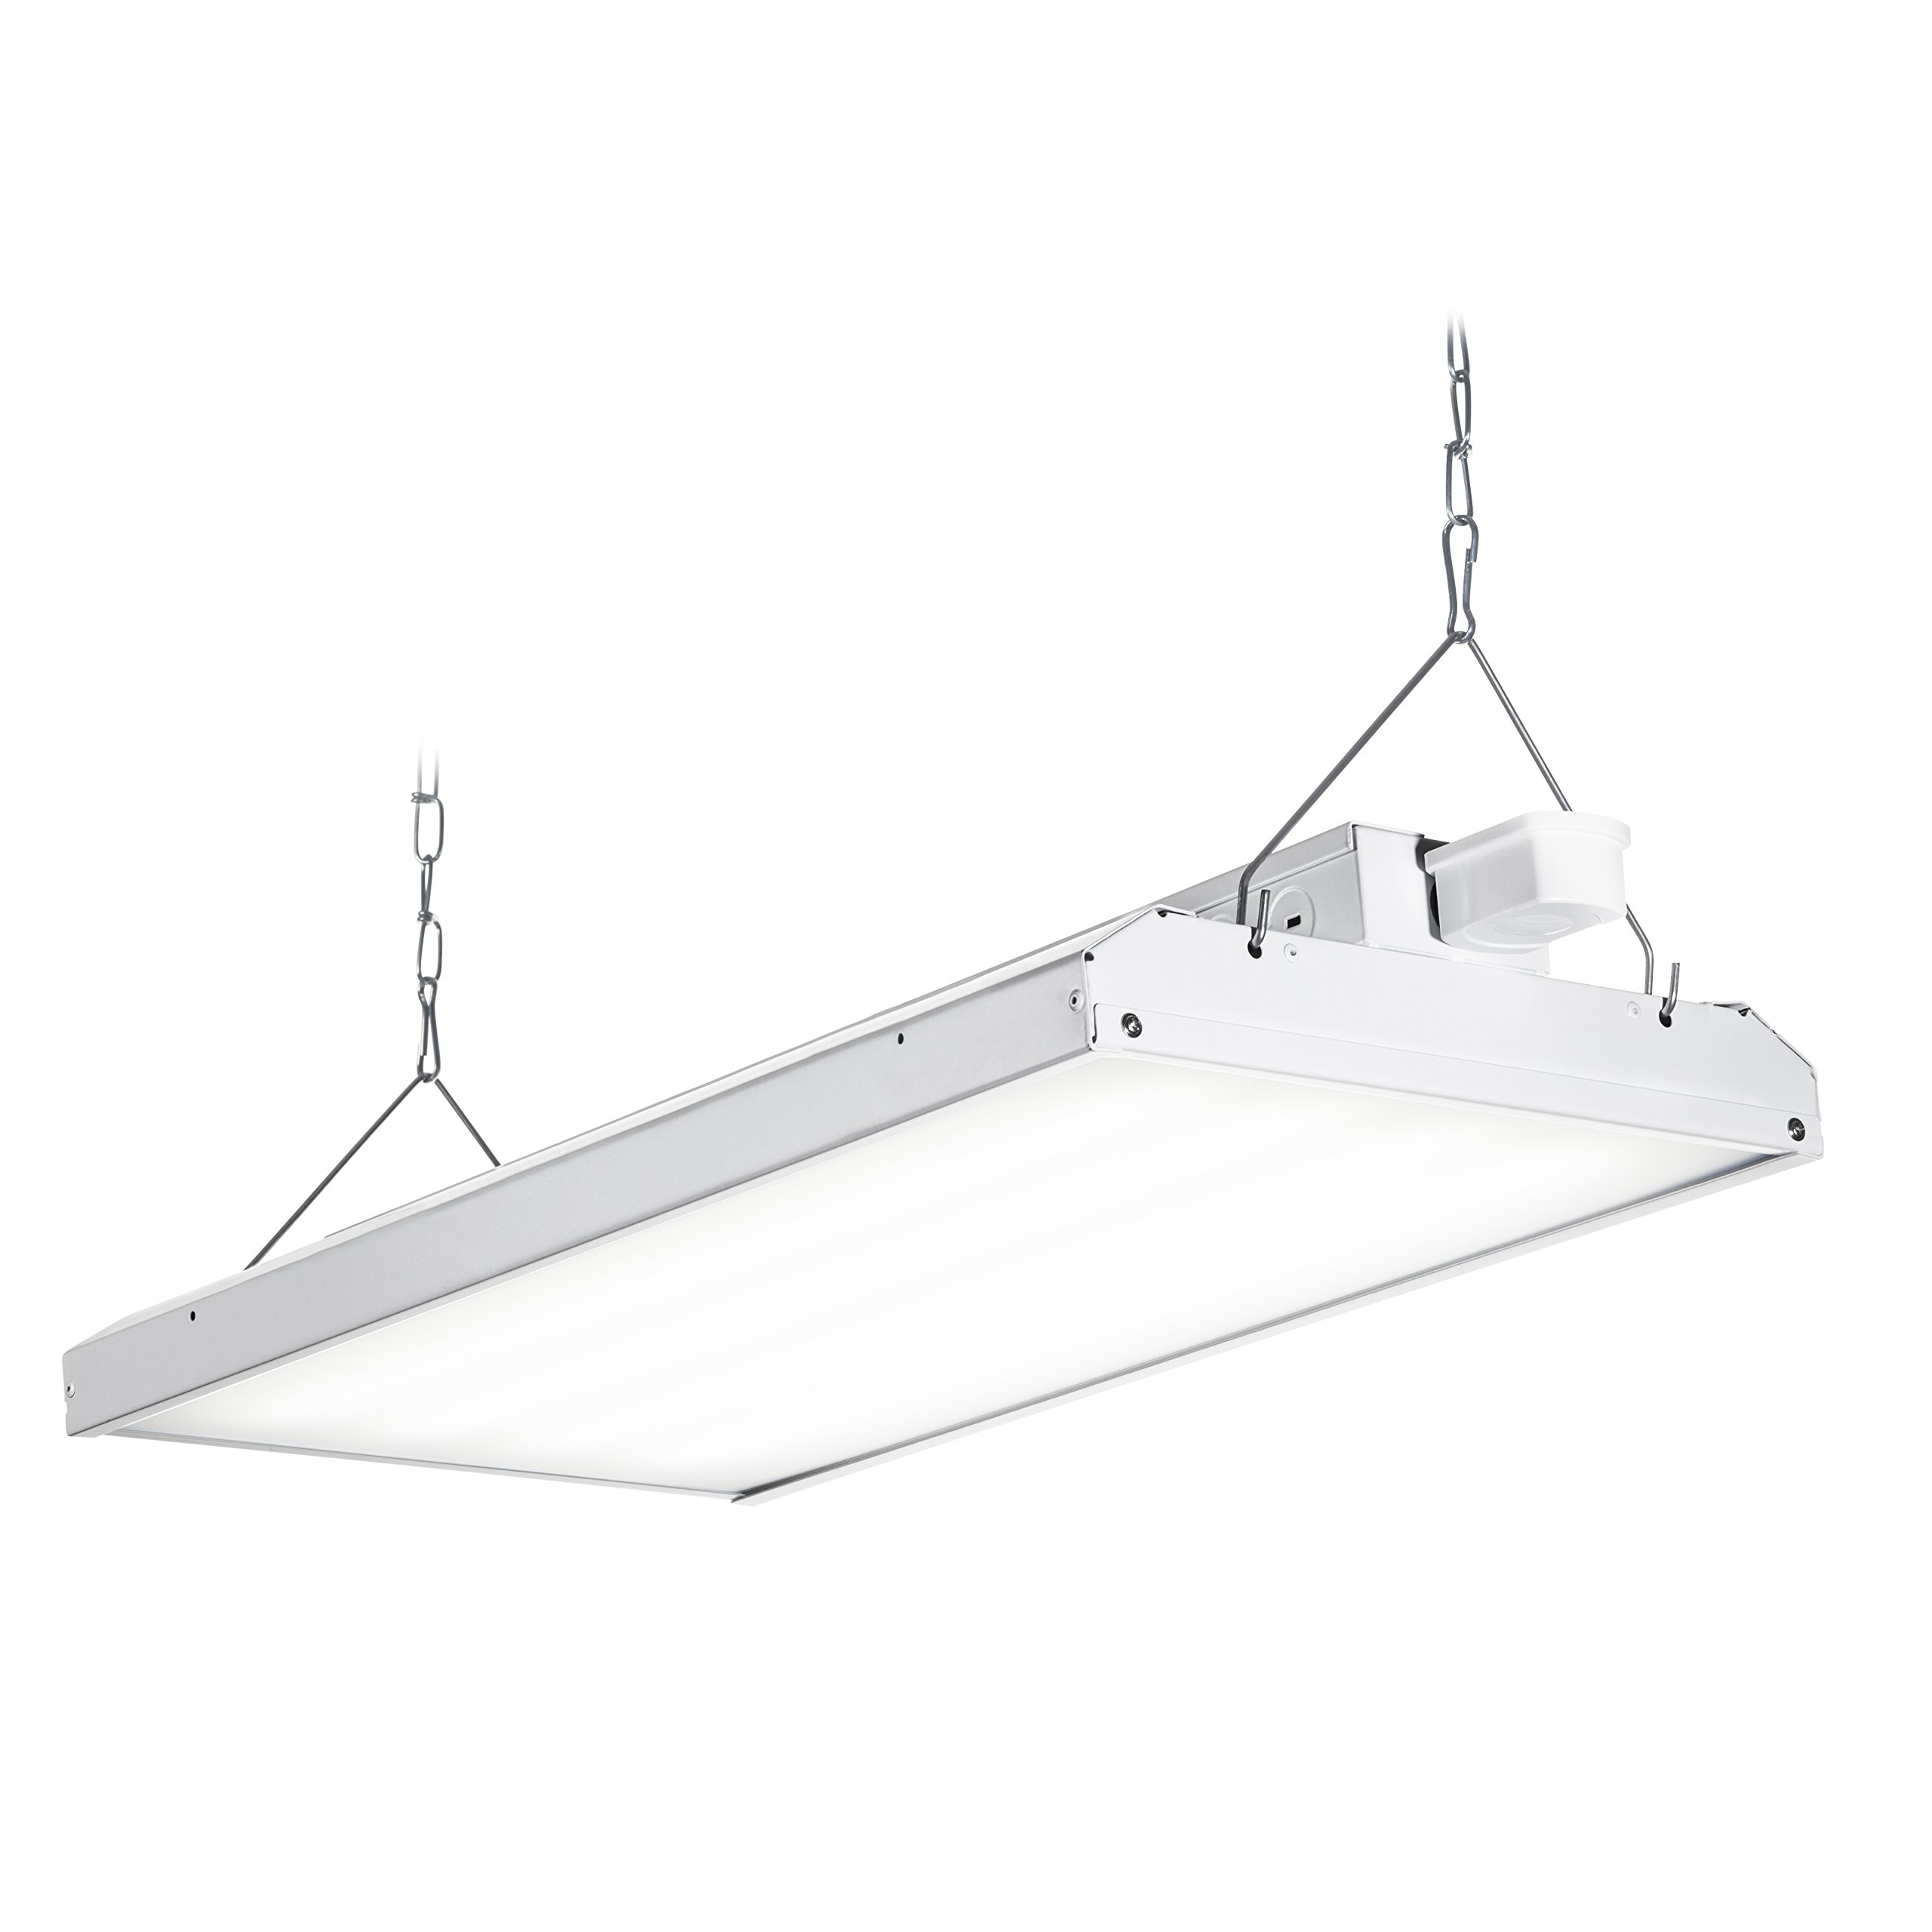 Hyperikon LED High Bay Light Fixture, Motion Sensor Included, 105W (300W Equivalent), 14000 Lumen, 5000K Indoor Area Warehouse Industrial Lighting, DLC and UL